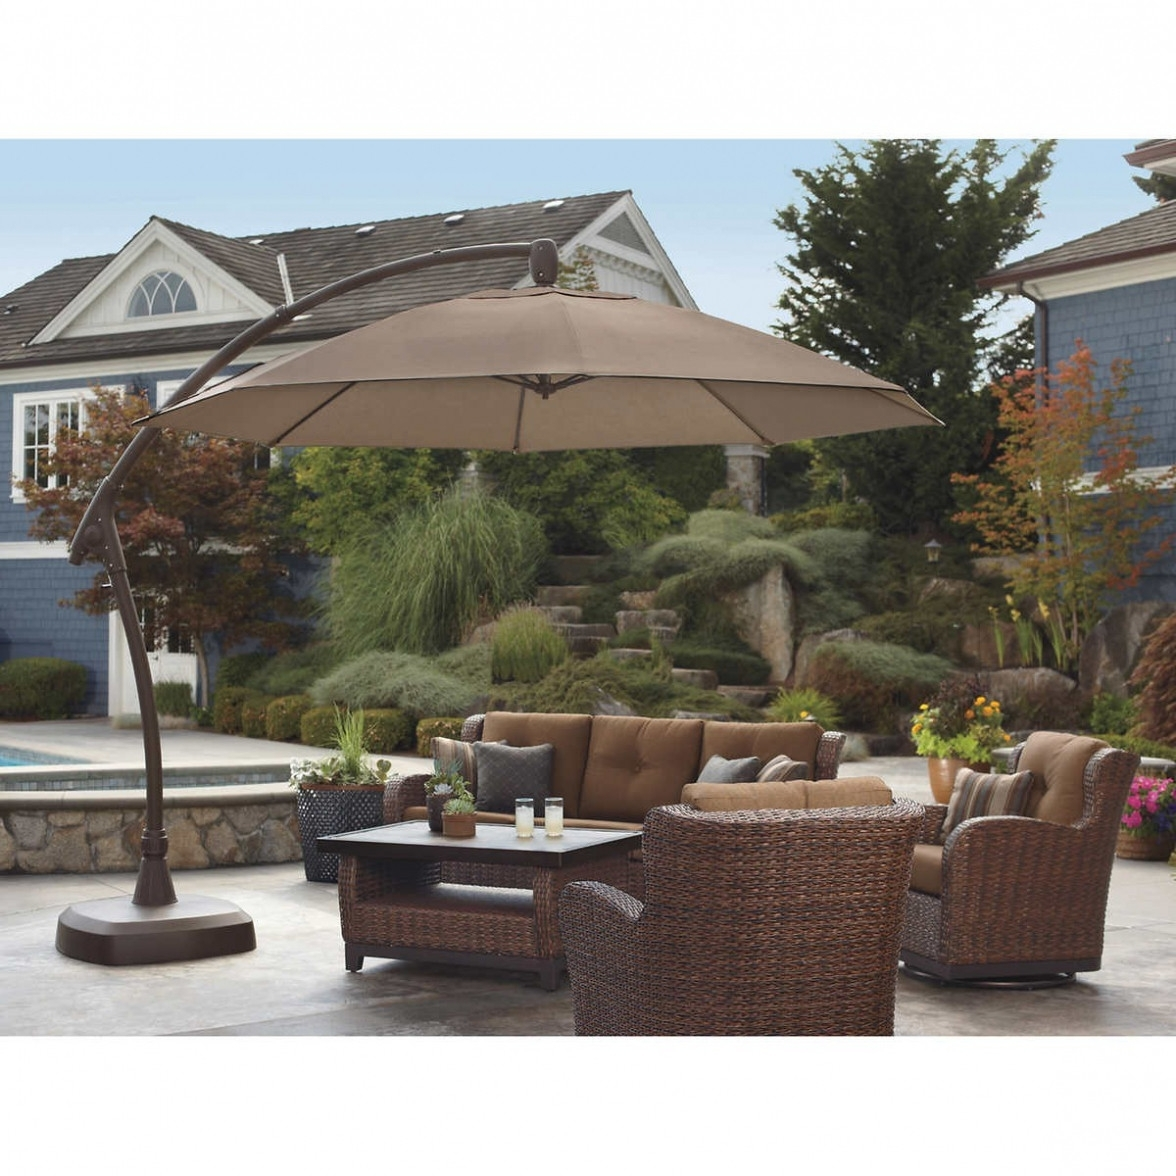 Costco Patio Umbrellas For Current Costco Patio Umbrella – Home Design Ideas (Gallery 2 of 20)